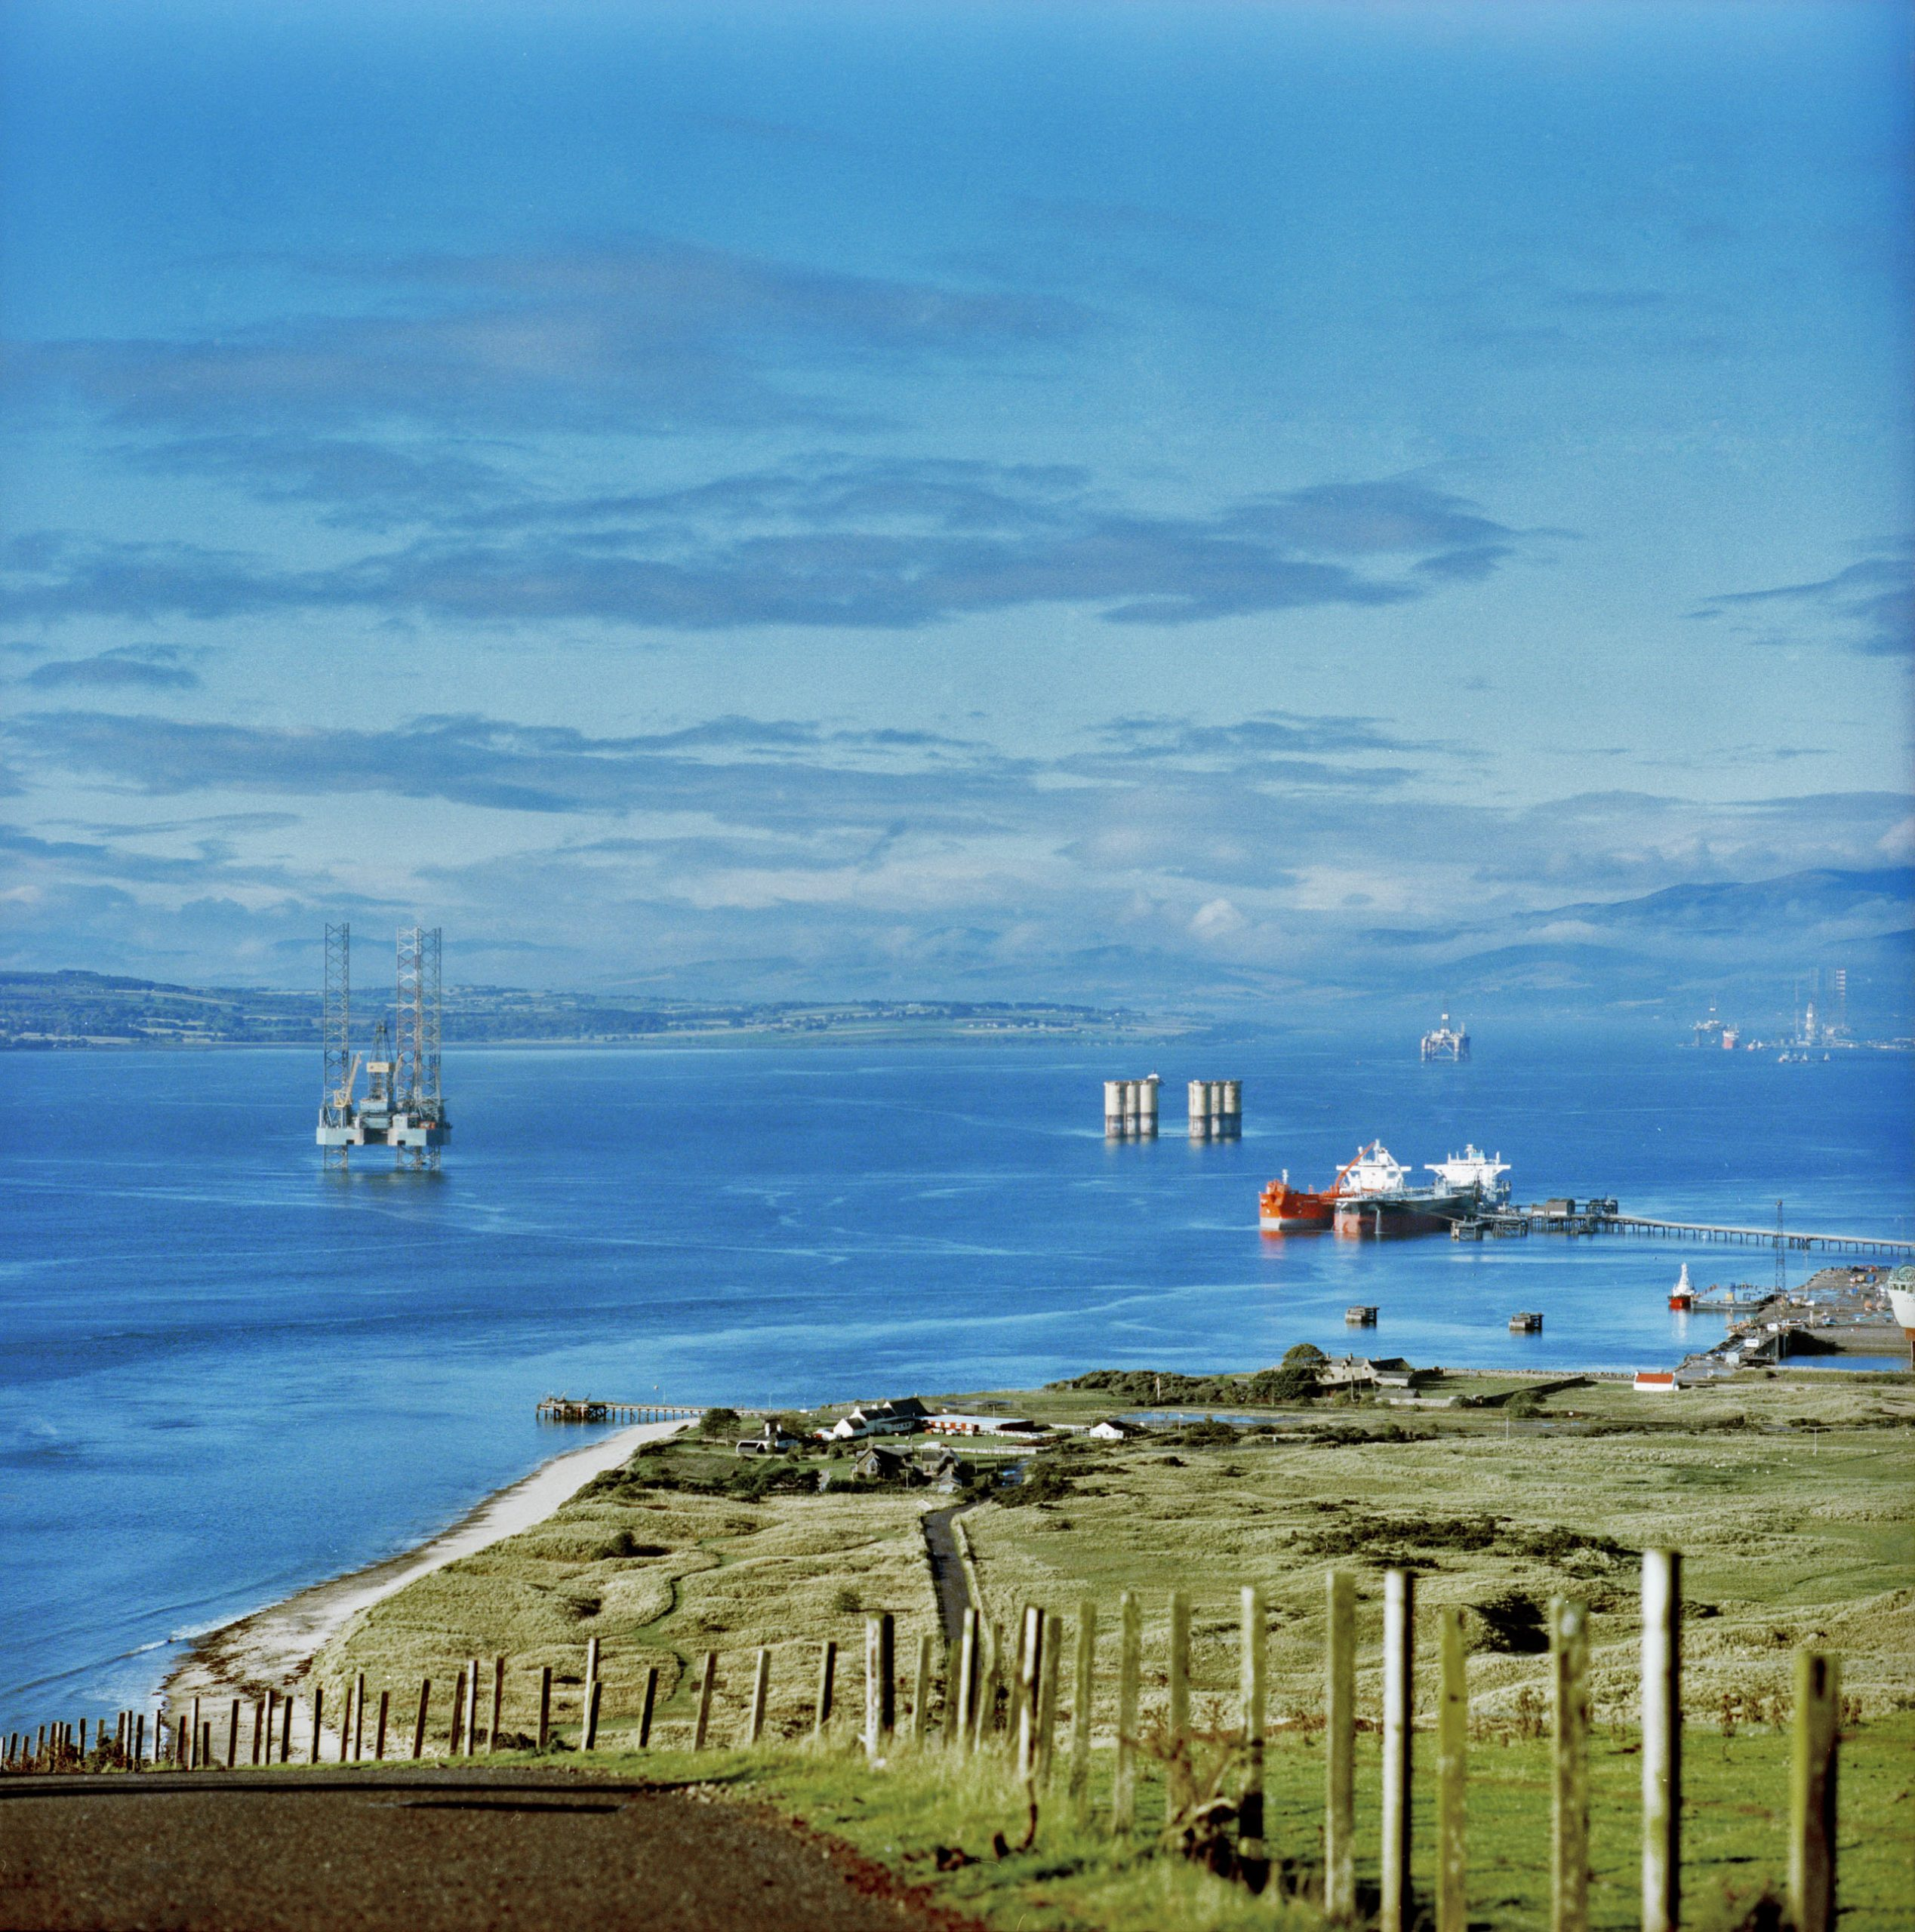 Oil rigs come to the deep harbour of the Cromarty firth at Nigg within close reach of the North sea oil fields to be repaired or decommissioned. Photo by Kieran Dodds.